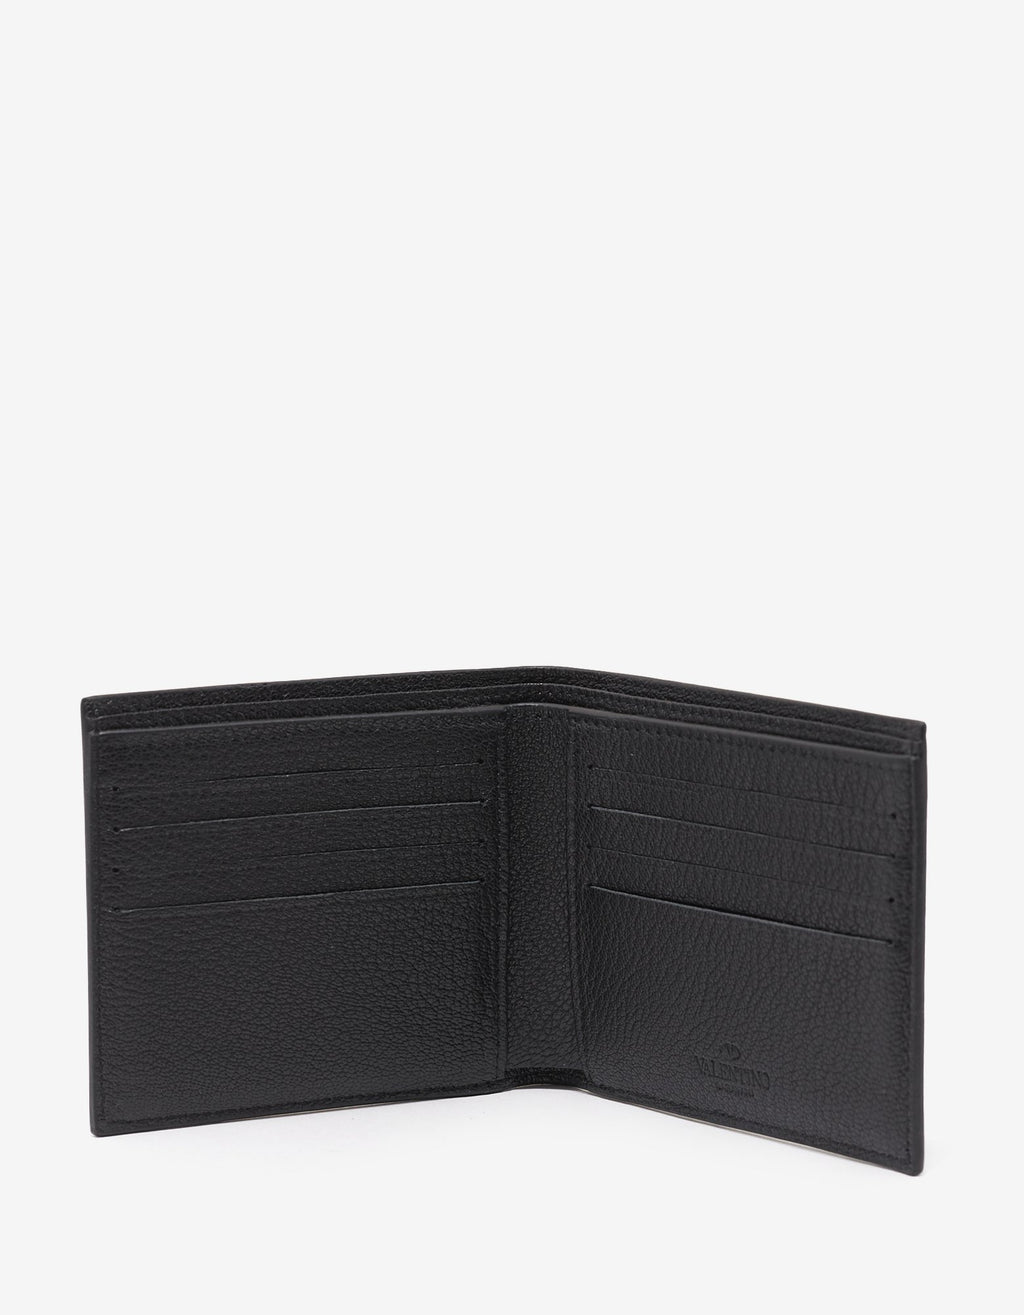 Black Grain Leather Billfold Wallet